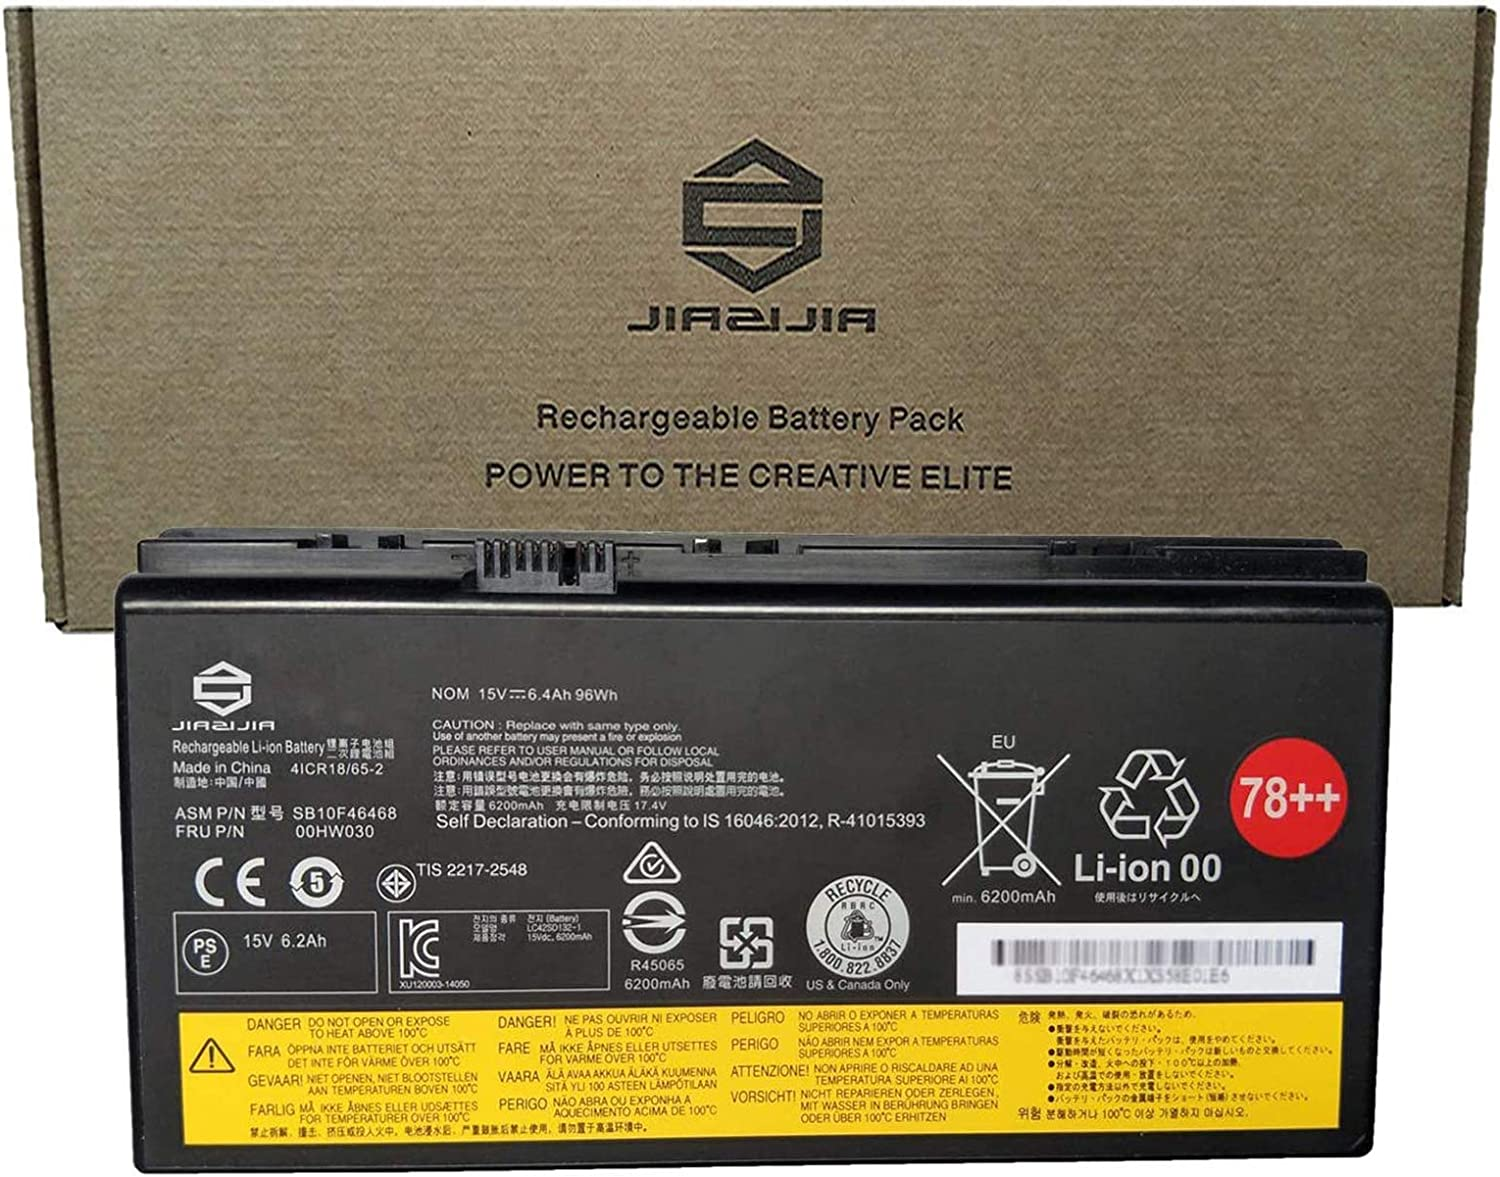 JIAZIJIA Max 47% OFF 00HW030 Laptop Battery Replacement Max 59% OFF Lenovo ThinkPad for